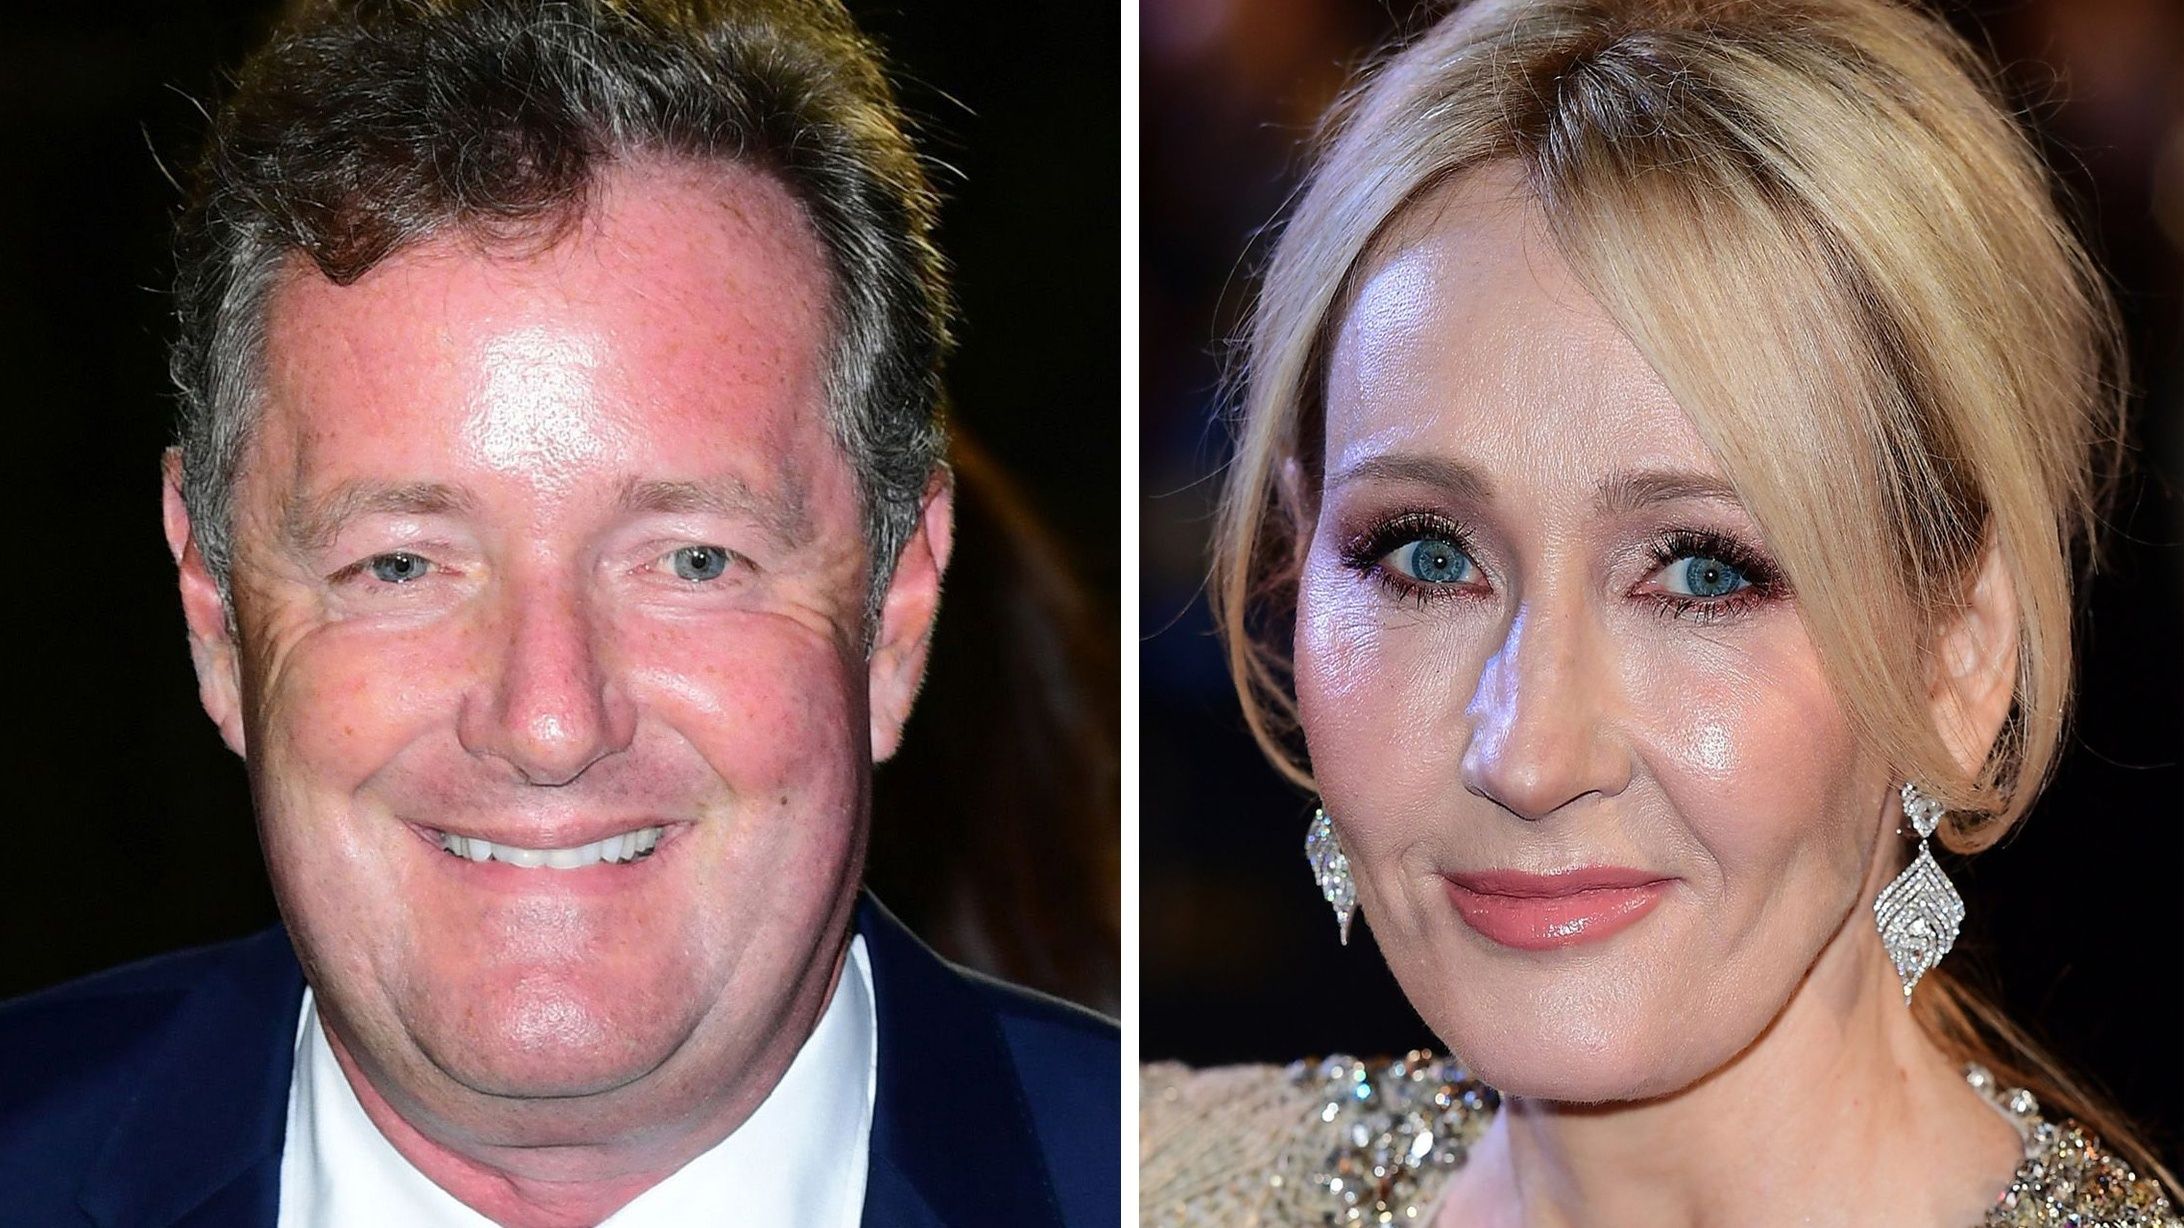 Piers Morgan and JK Rowling